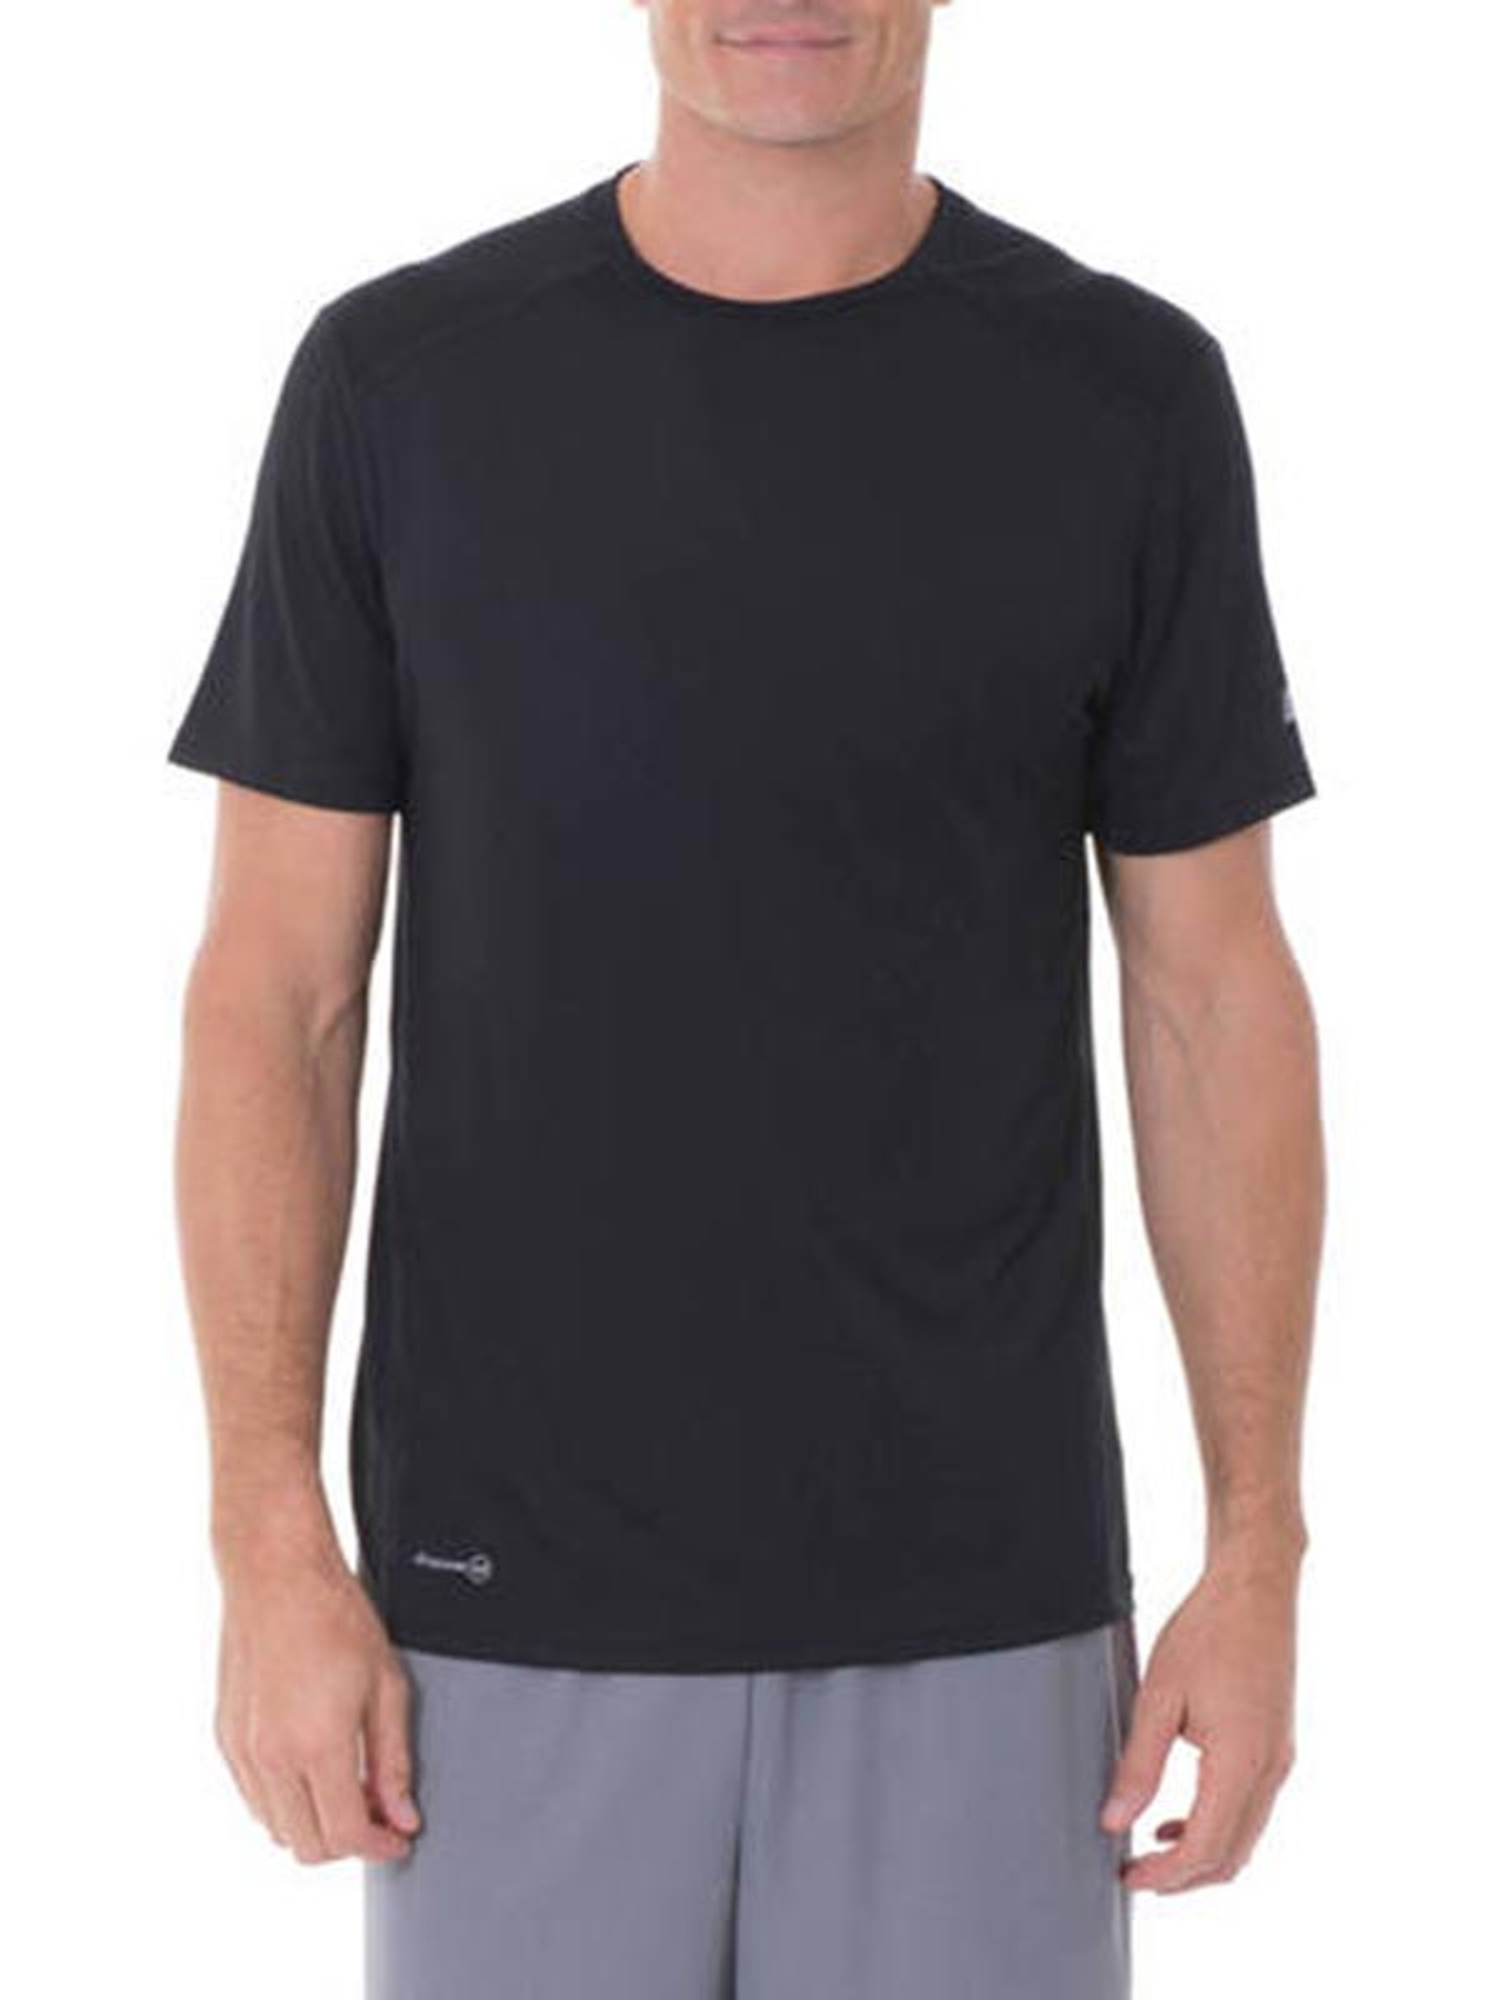 Russell Men's Performance Short Sleeve Crew Neck Tee